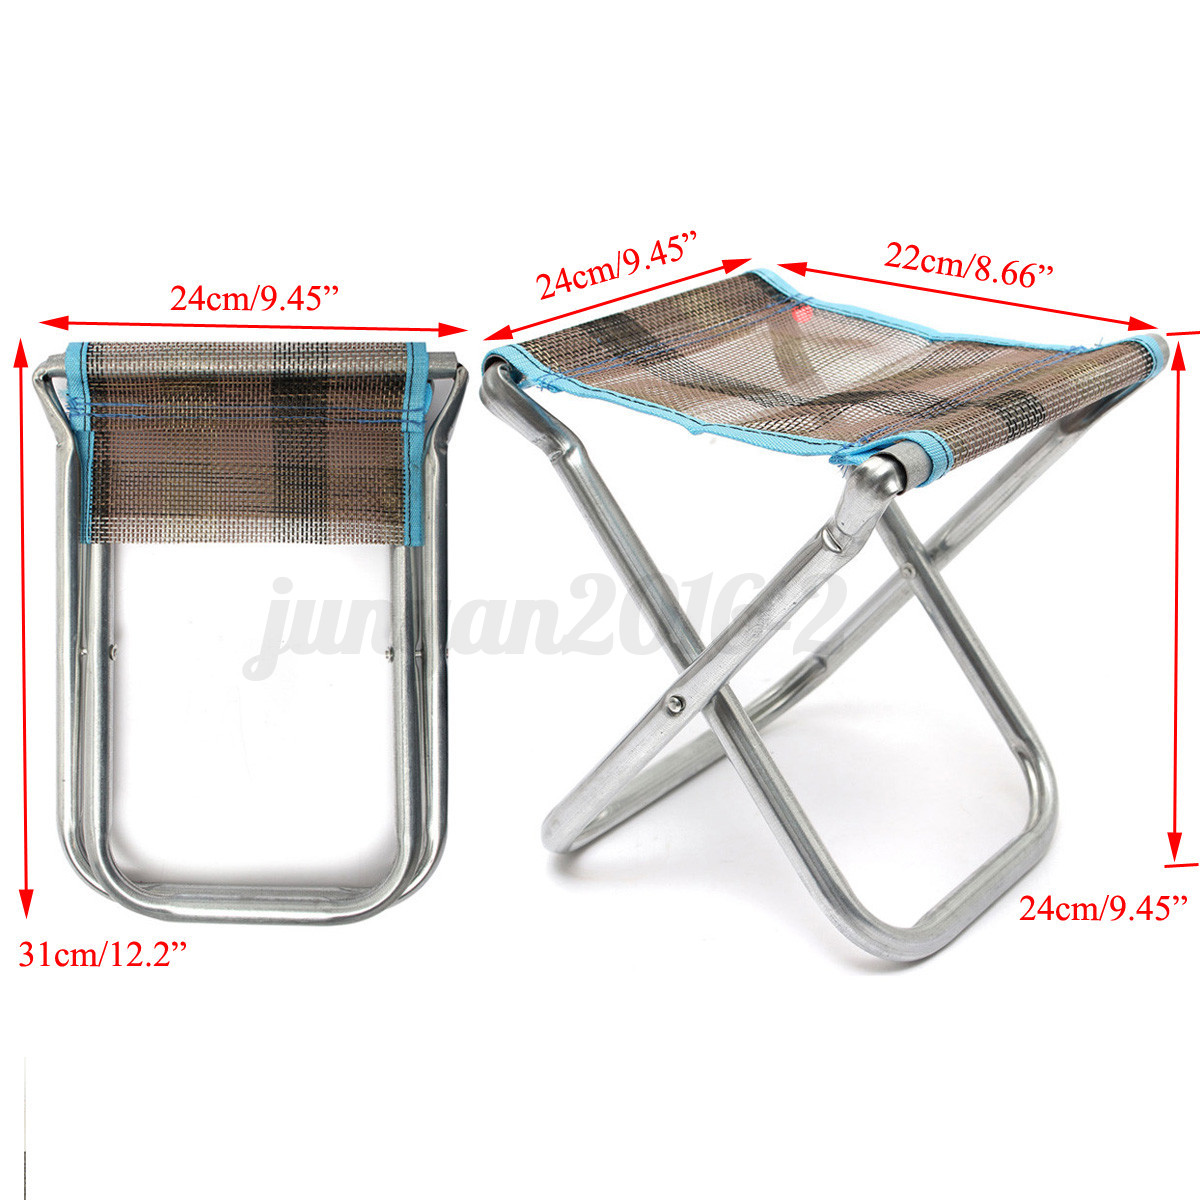 Folding Portable Camping Beach Chair Fold Up Camp Festival Seat Fishing Chairs